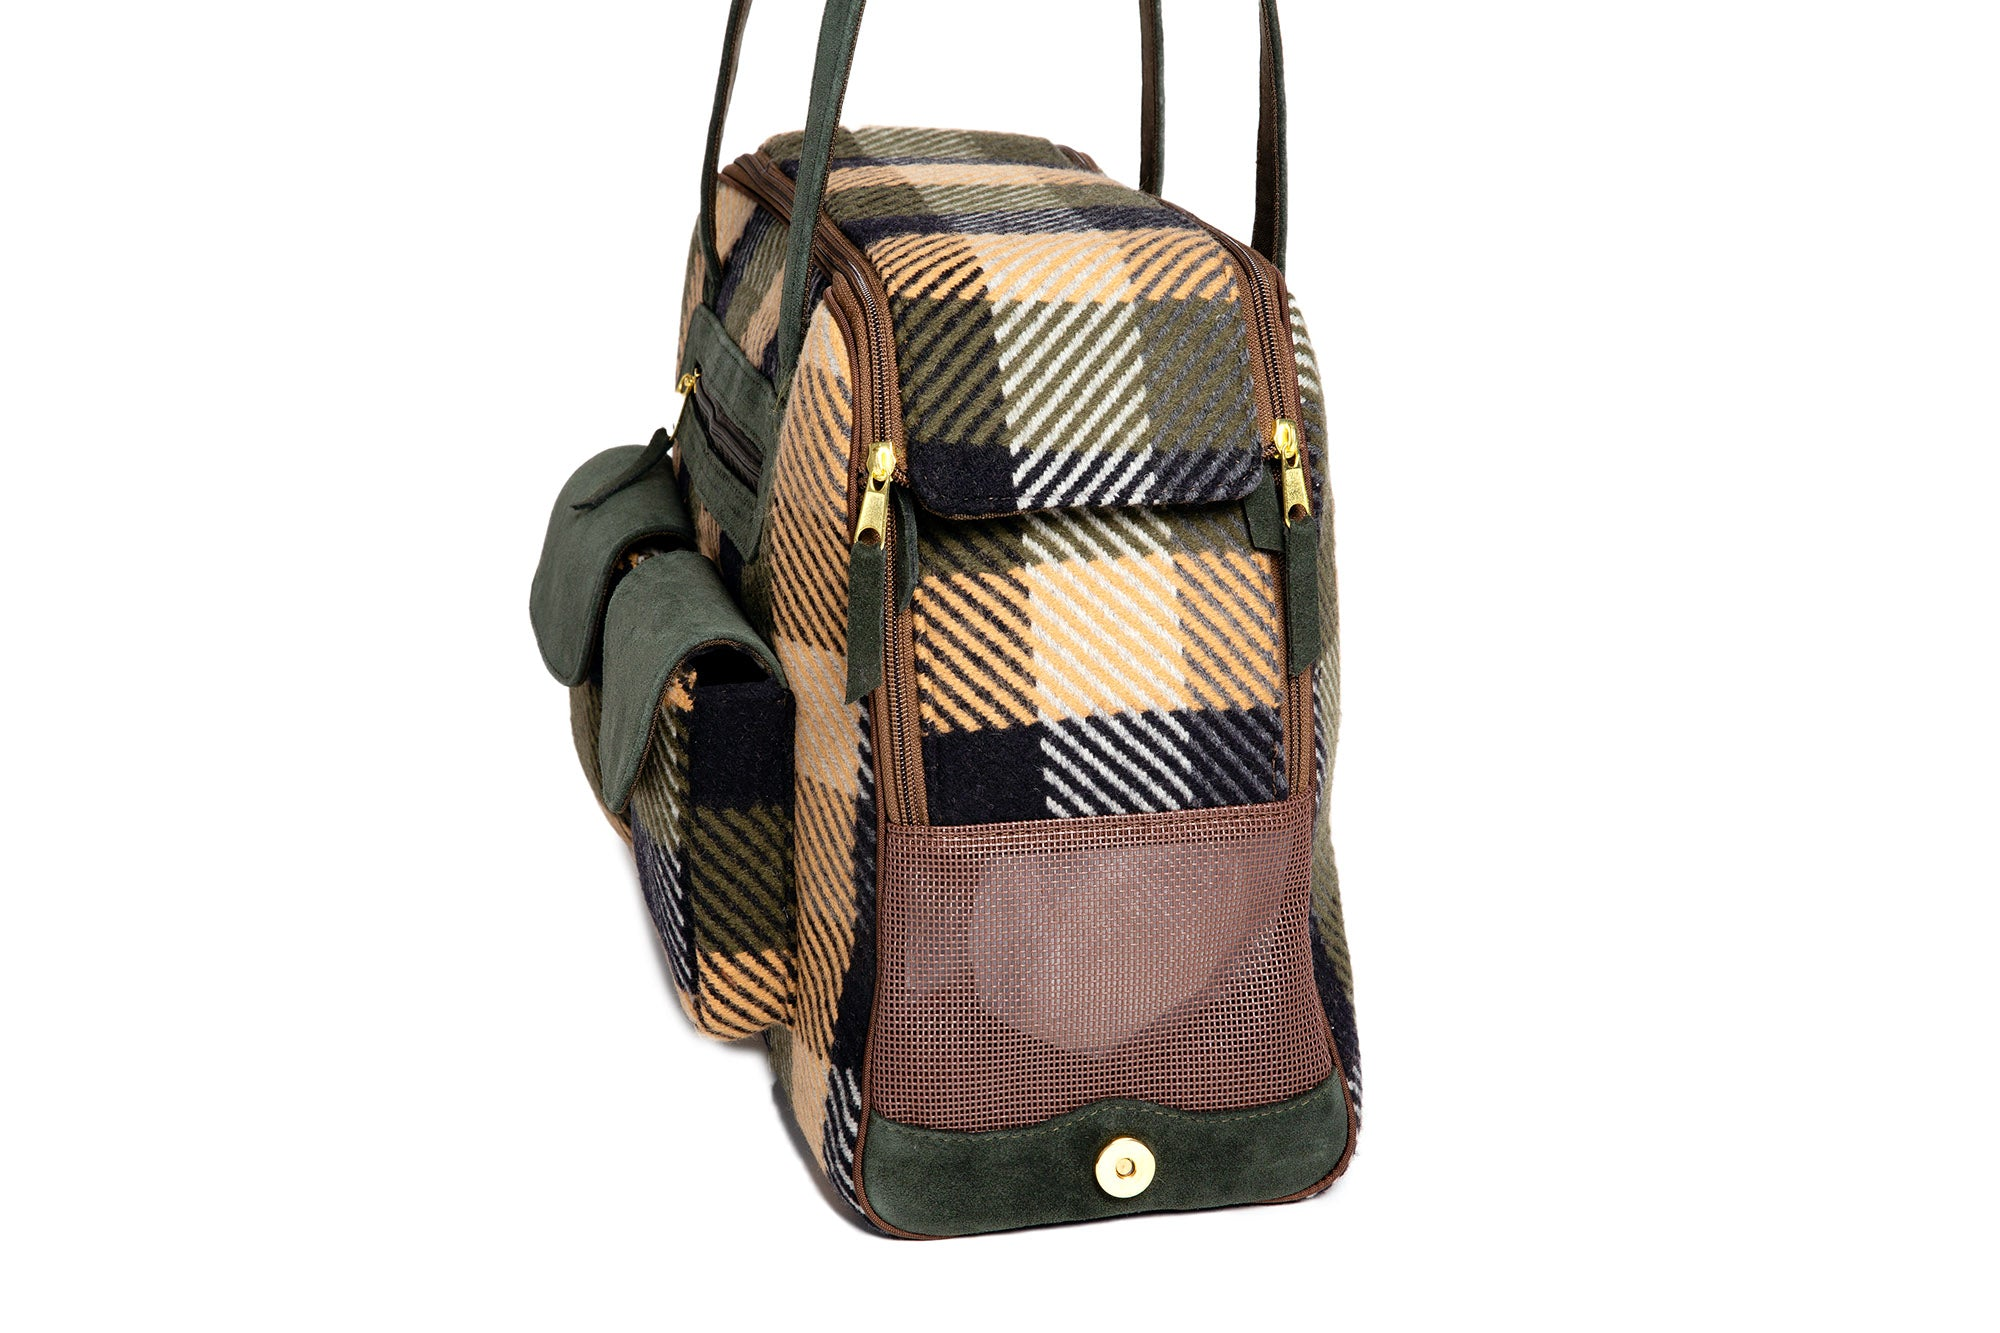 Dog Carrier - Wool Plaid Blue, Green & Tan